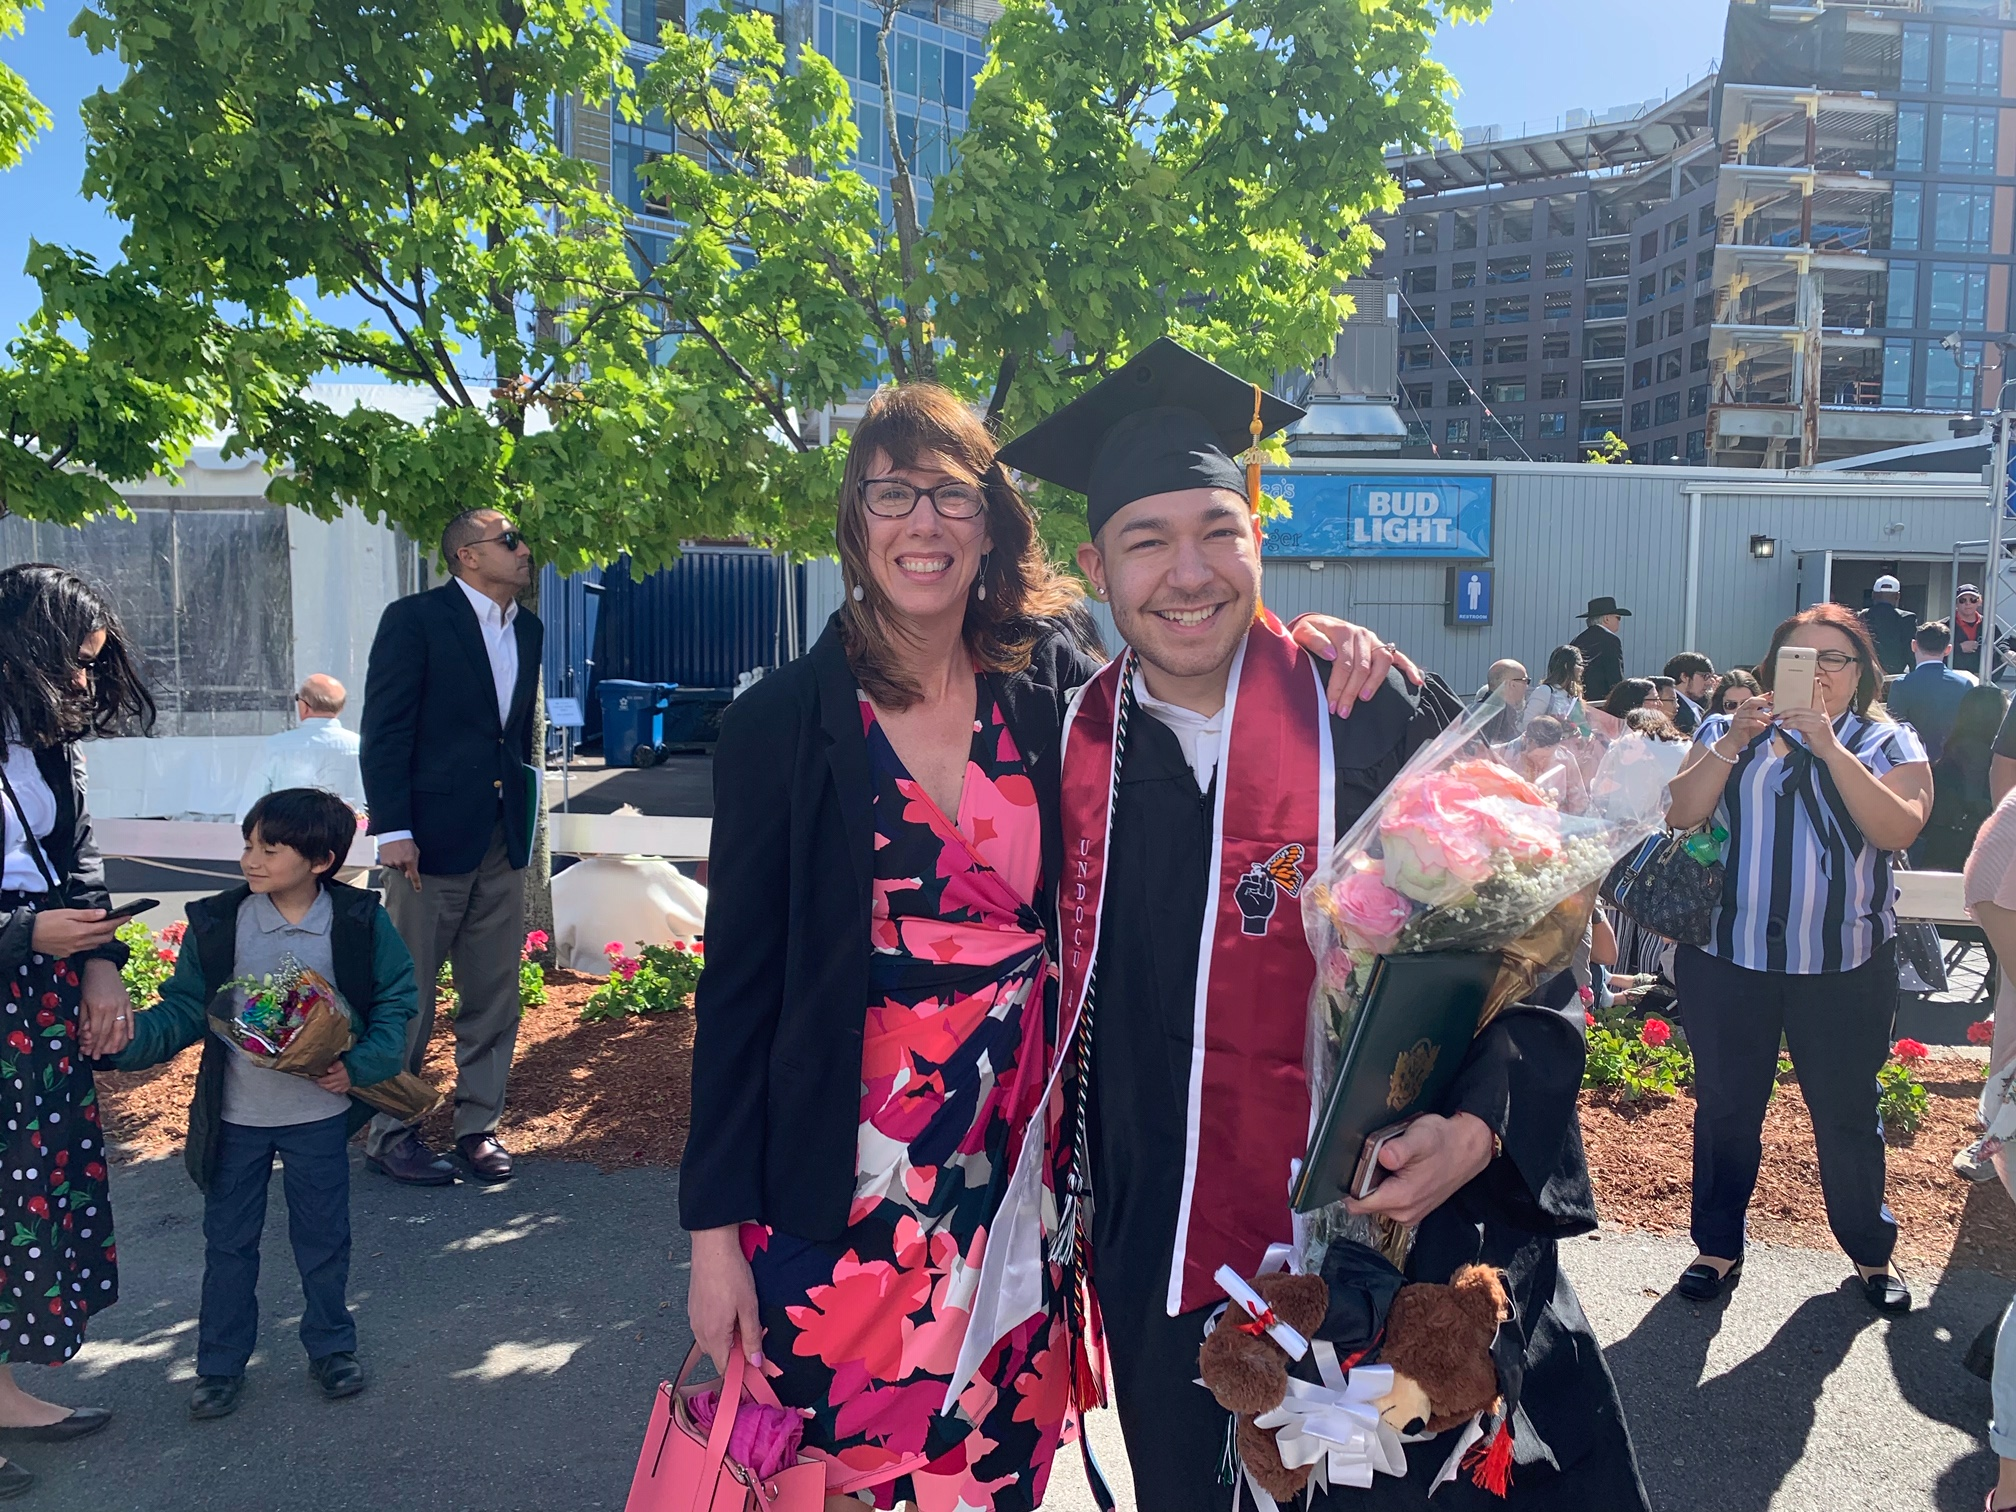 A woman and a young man in his graduation cap and gown posing for a photo on Lesley graduation day 2019.